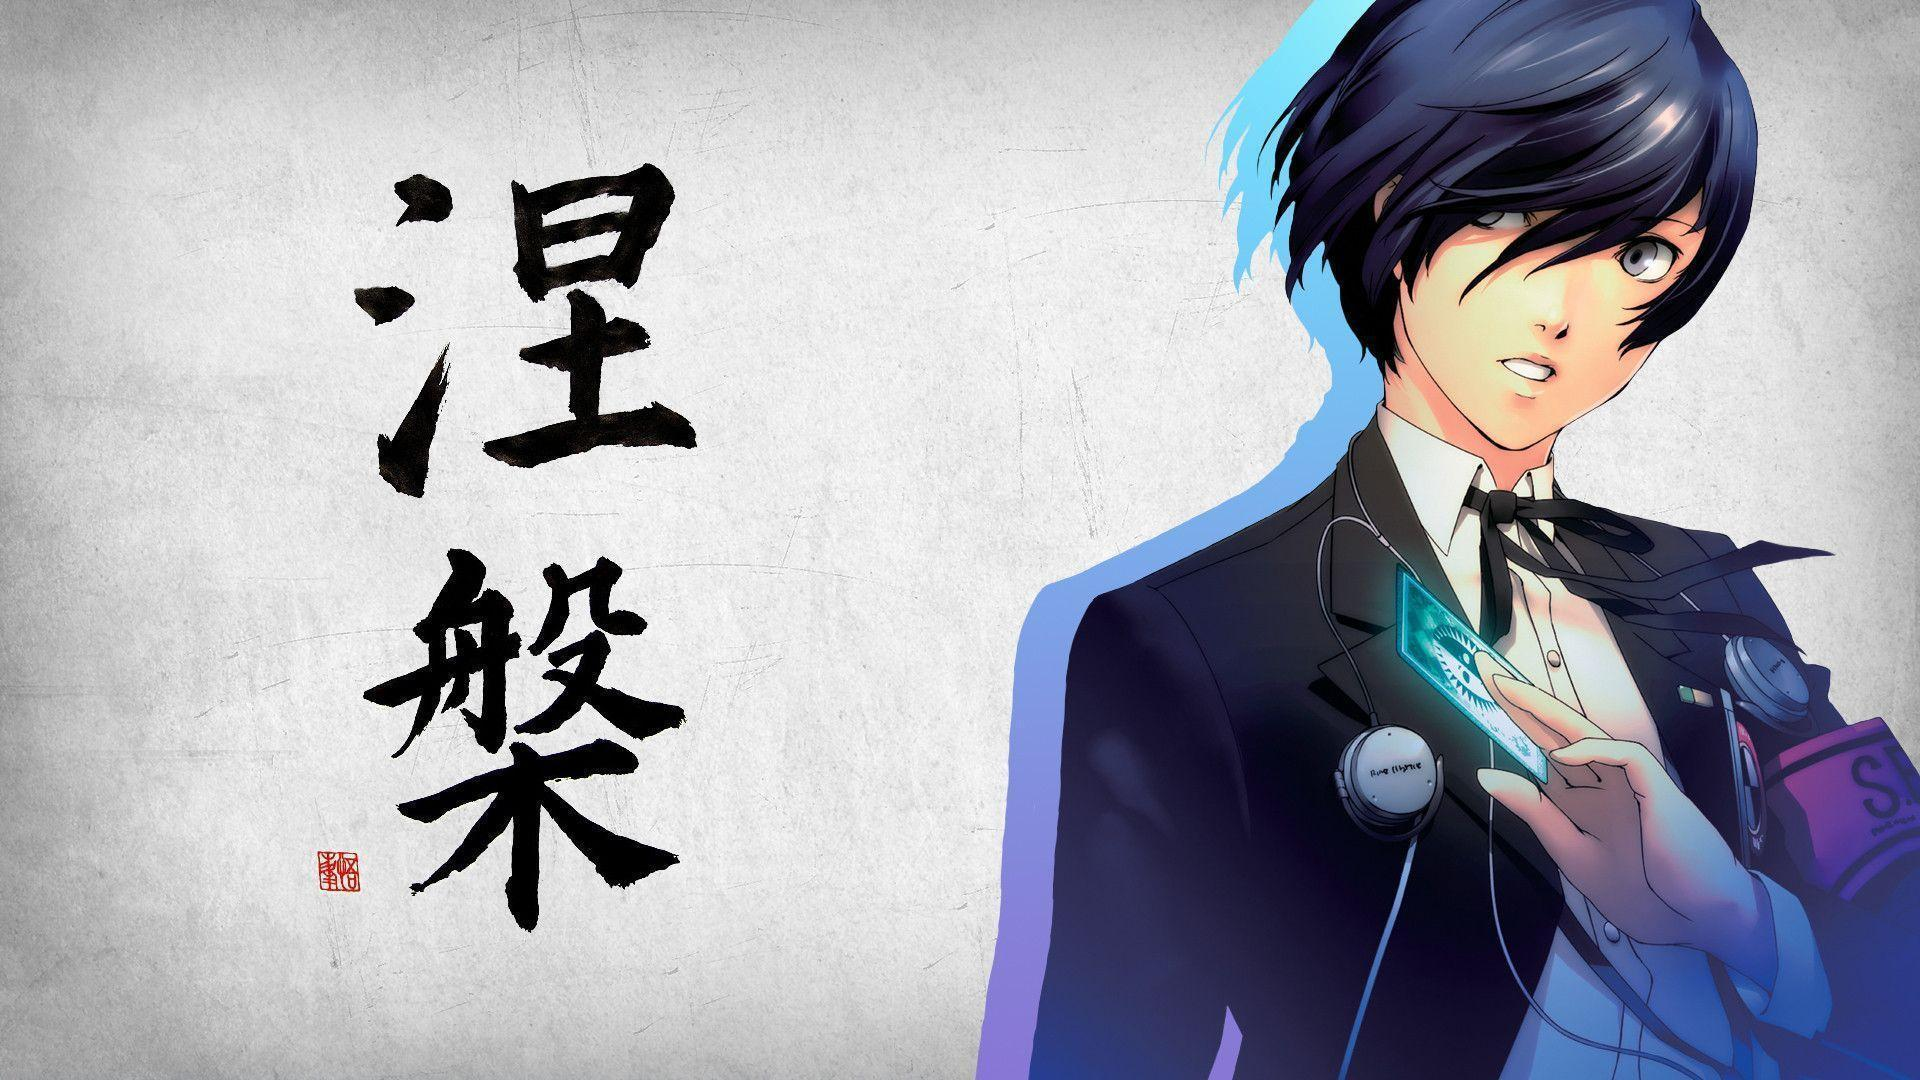 Persona 3 Wallpapers